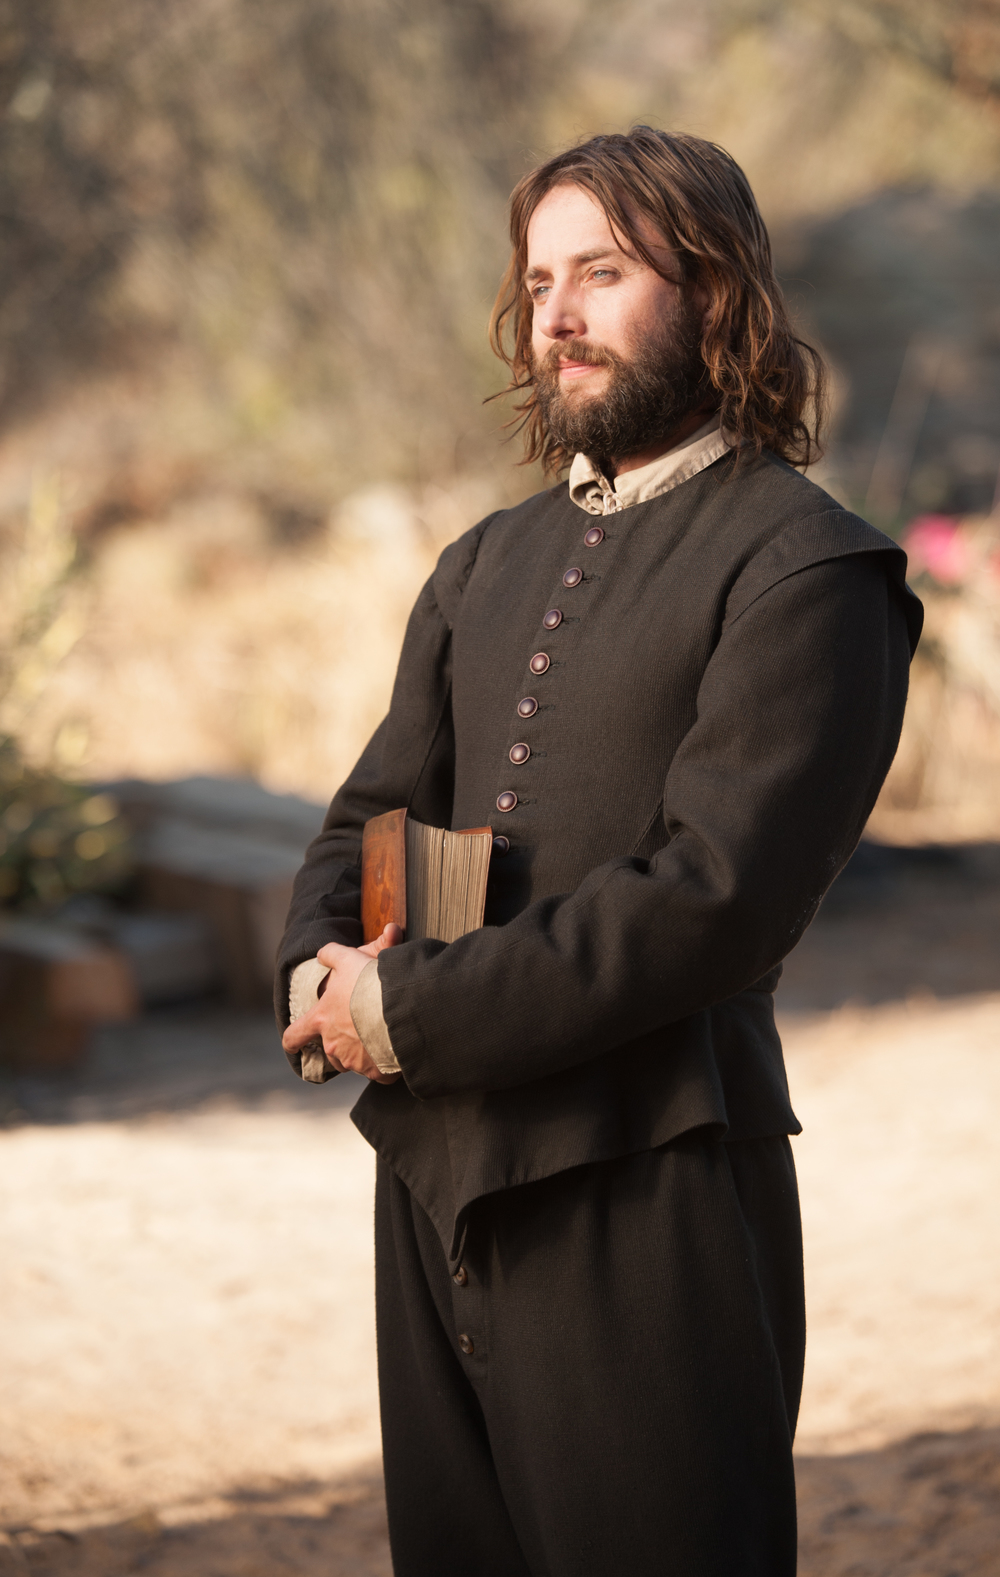 """Vincent Kartheiser as William Bradford in National Geographic Channel's two-night movie event """"Saints & Strangers,"""" premiering Nov. 22-23, 9/8c.(photo credit:  National Geographic Channels/David Bloomer)"""